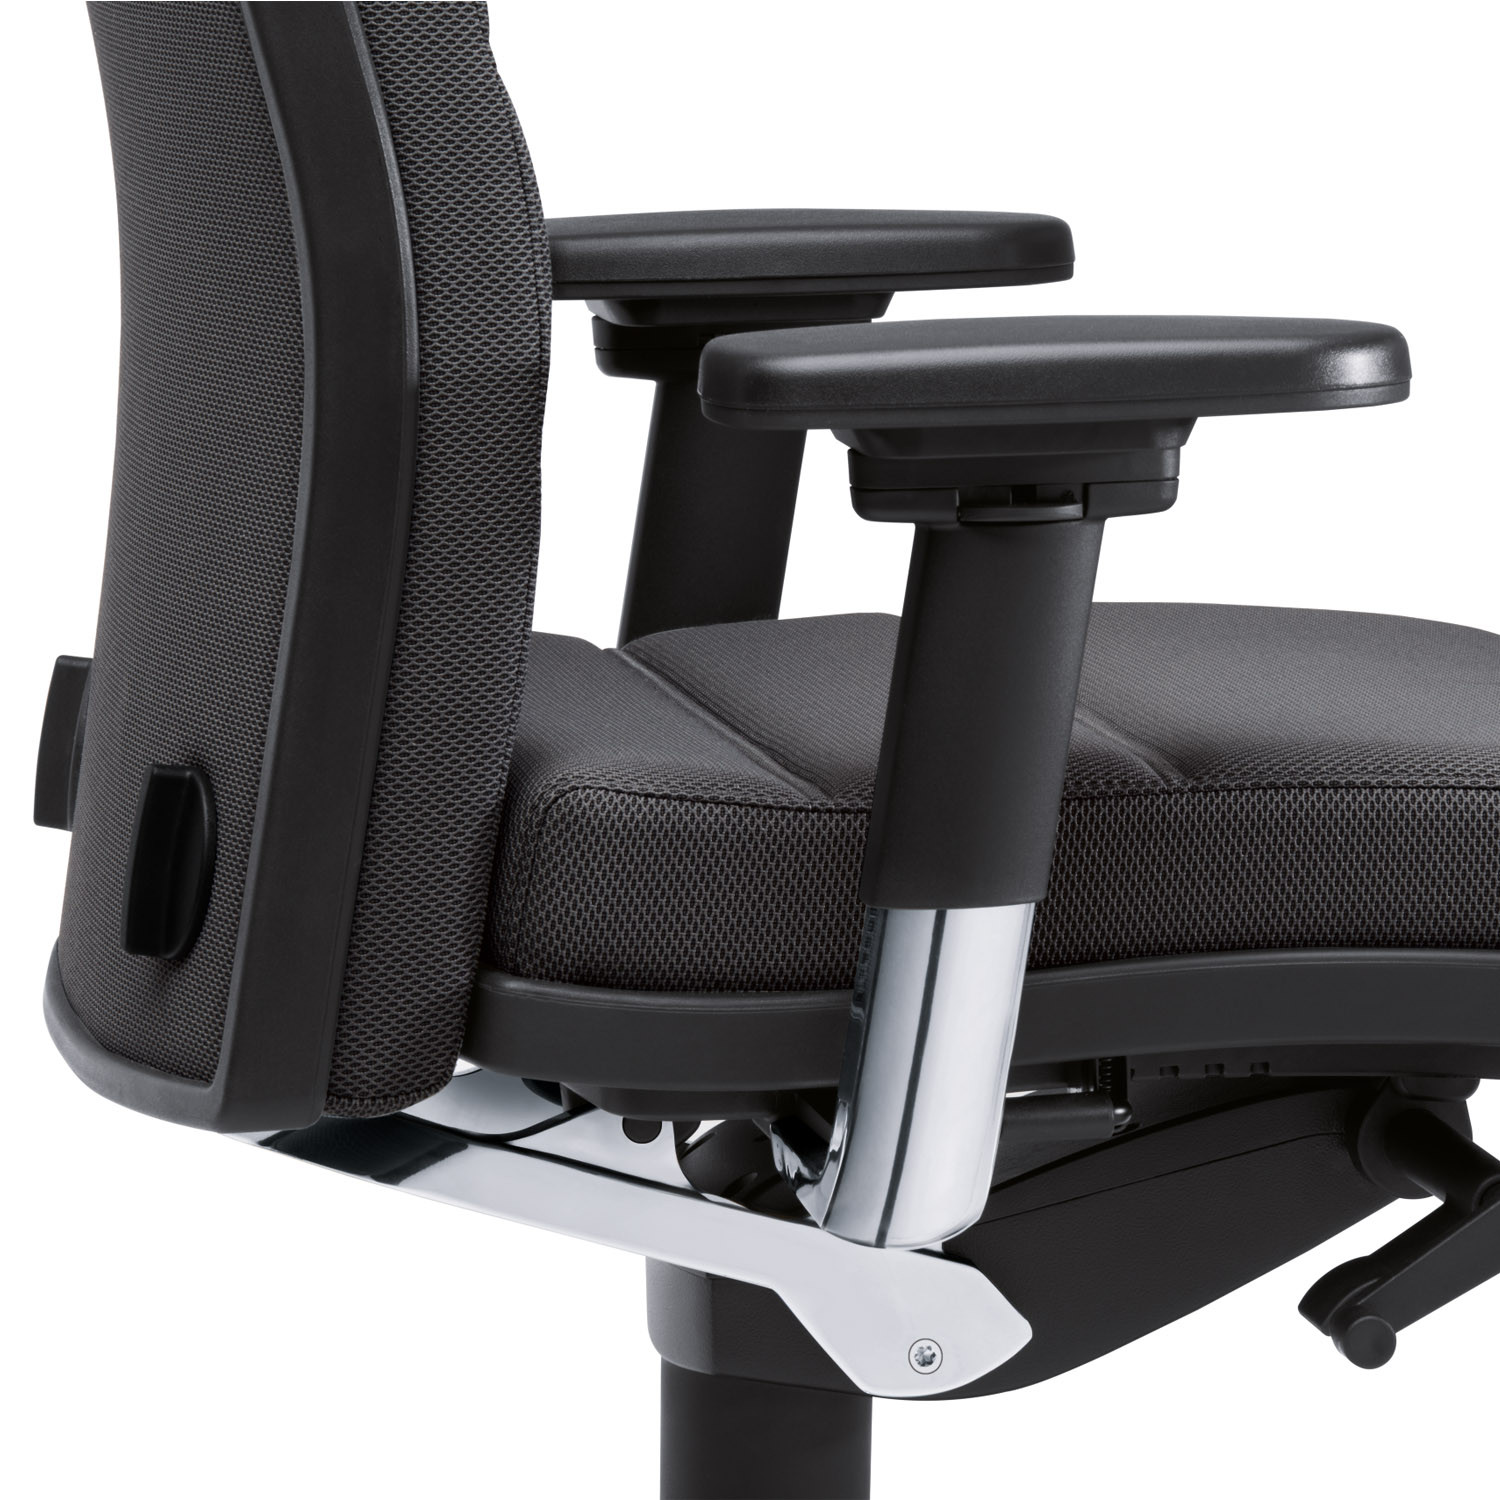 Mr. 24 Executive Seating with Adjustable Armrests